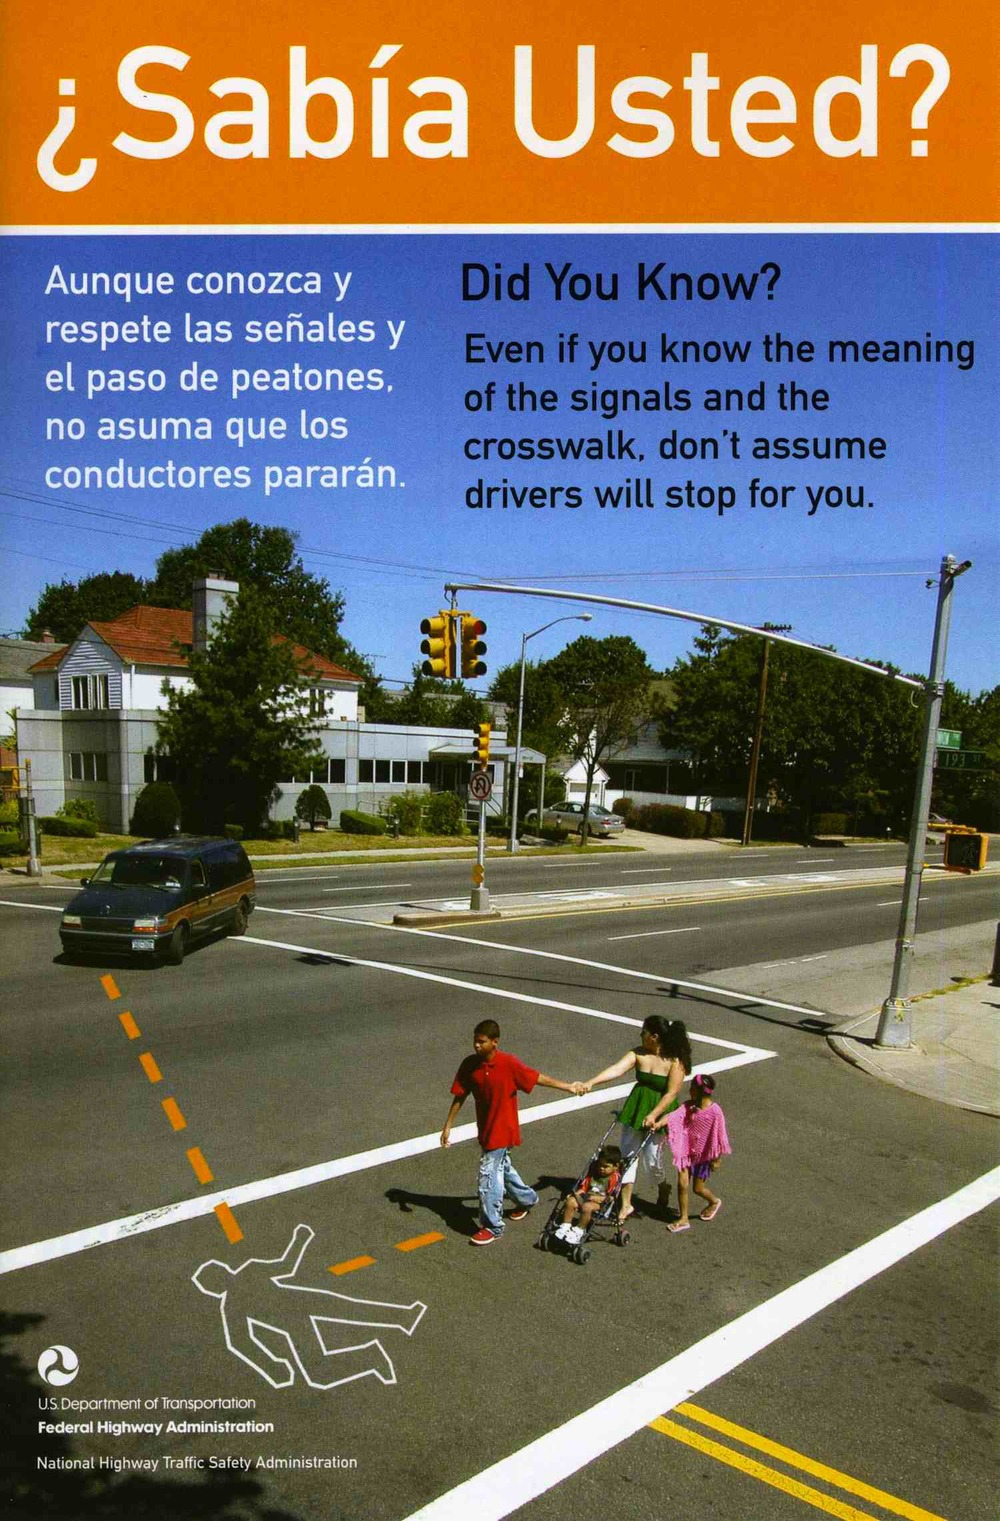 PEDESTRIAN SAFETY BROCHURE, U.S. DEPARTMENT OF TRANSPORTATION